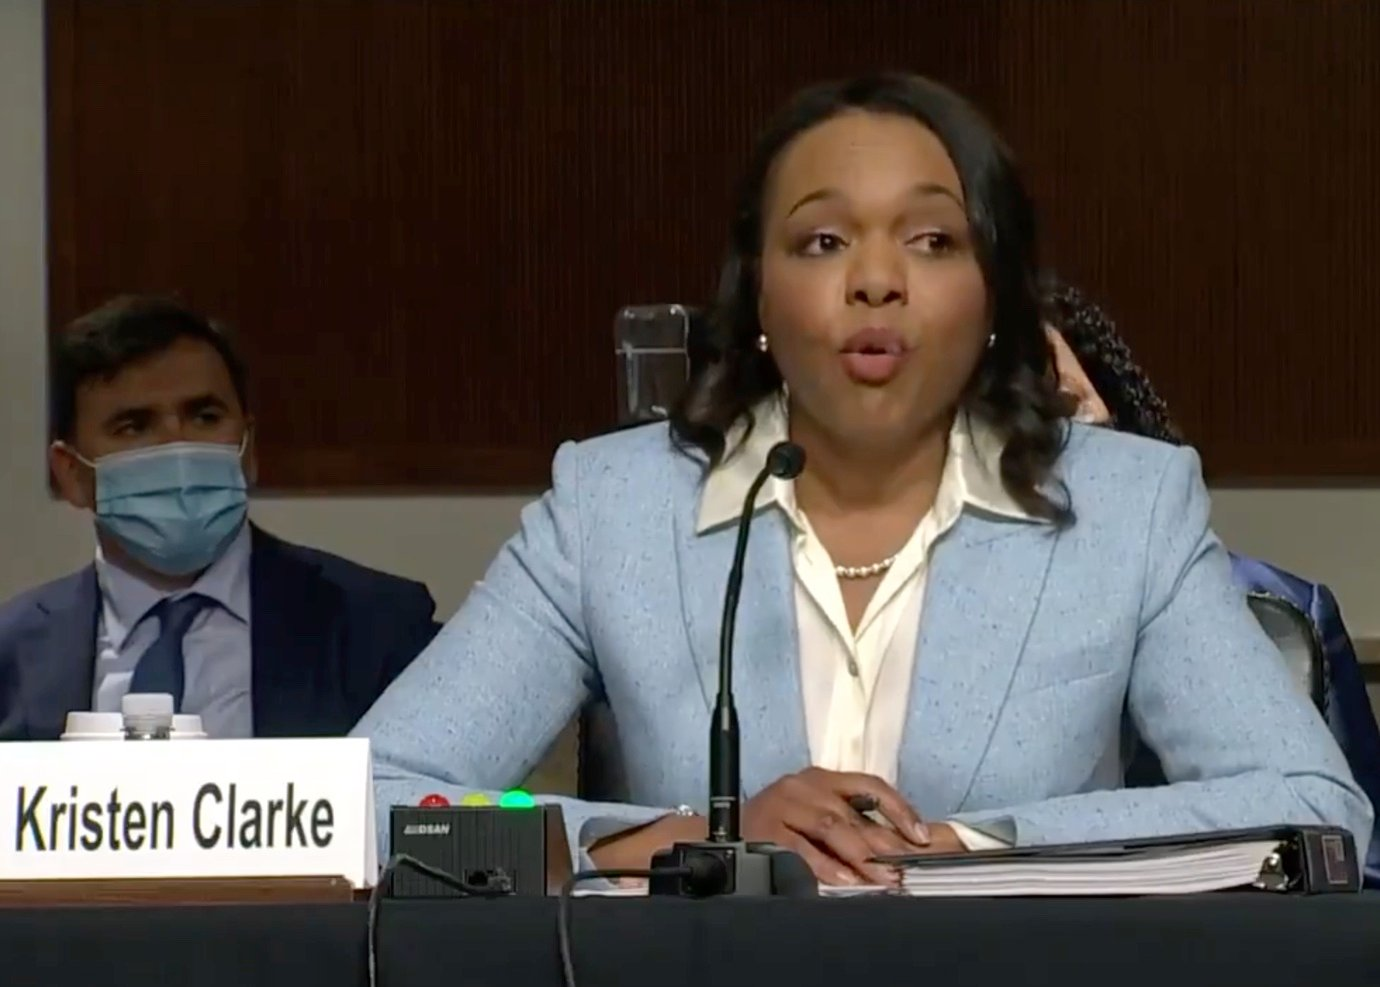 Biden's pick for assistant AG caught contradicting herself on defunding police: 'Astonishing and not credible'